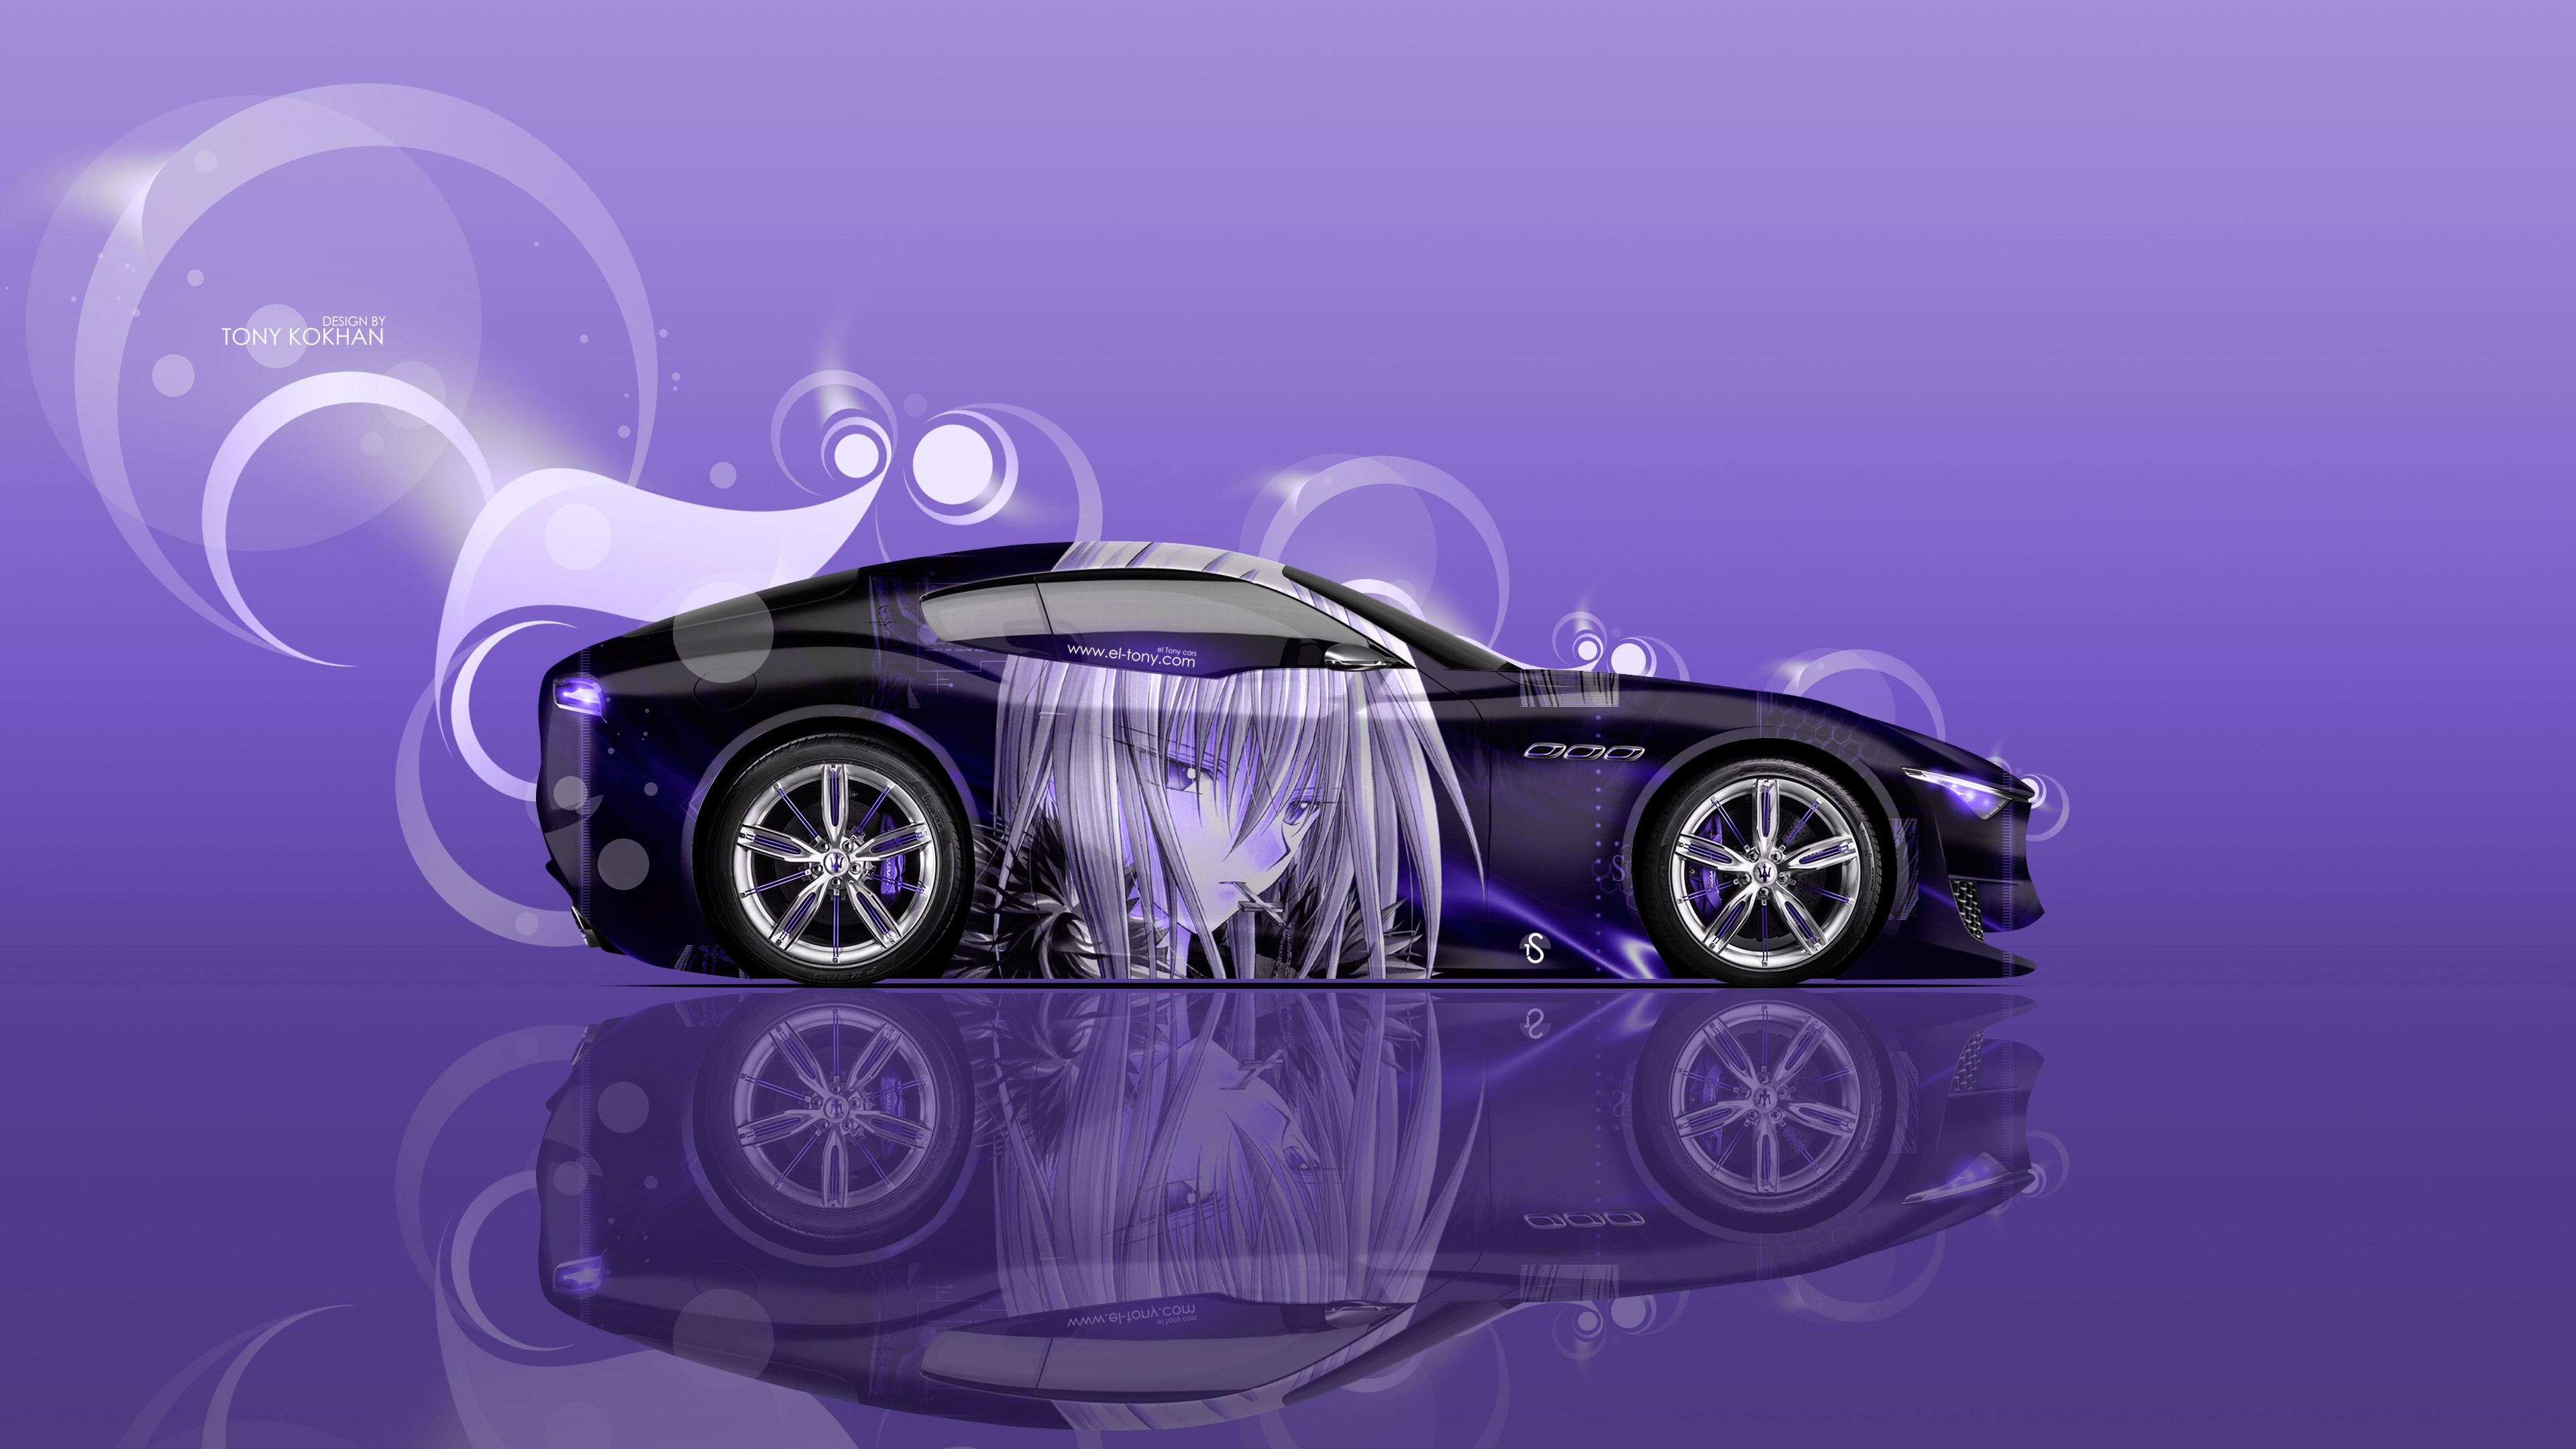 Maserati-Alfieri-Side-Anime-Boy-Aerography-Car-2016-Violet-Neon-Effects-4K-Wallpapers-design-by-Tony-Kokhan-www.el-tony.com-image